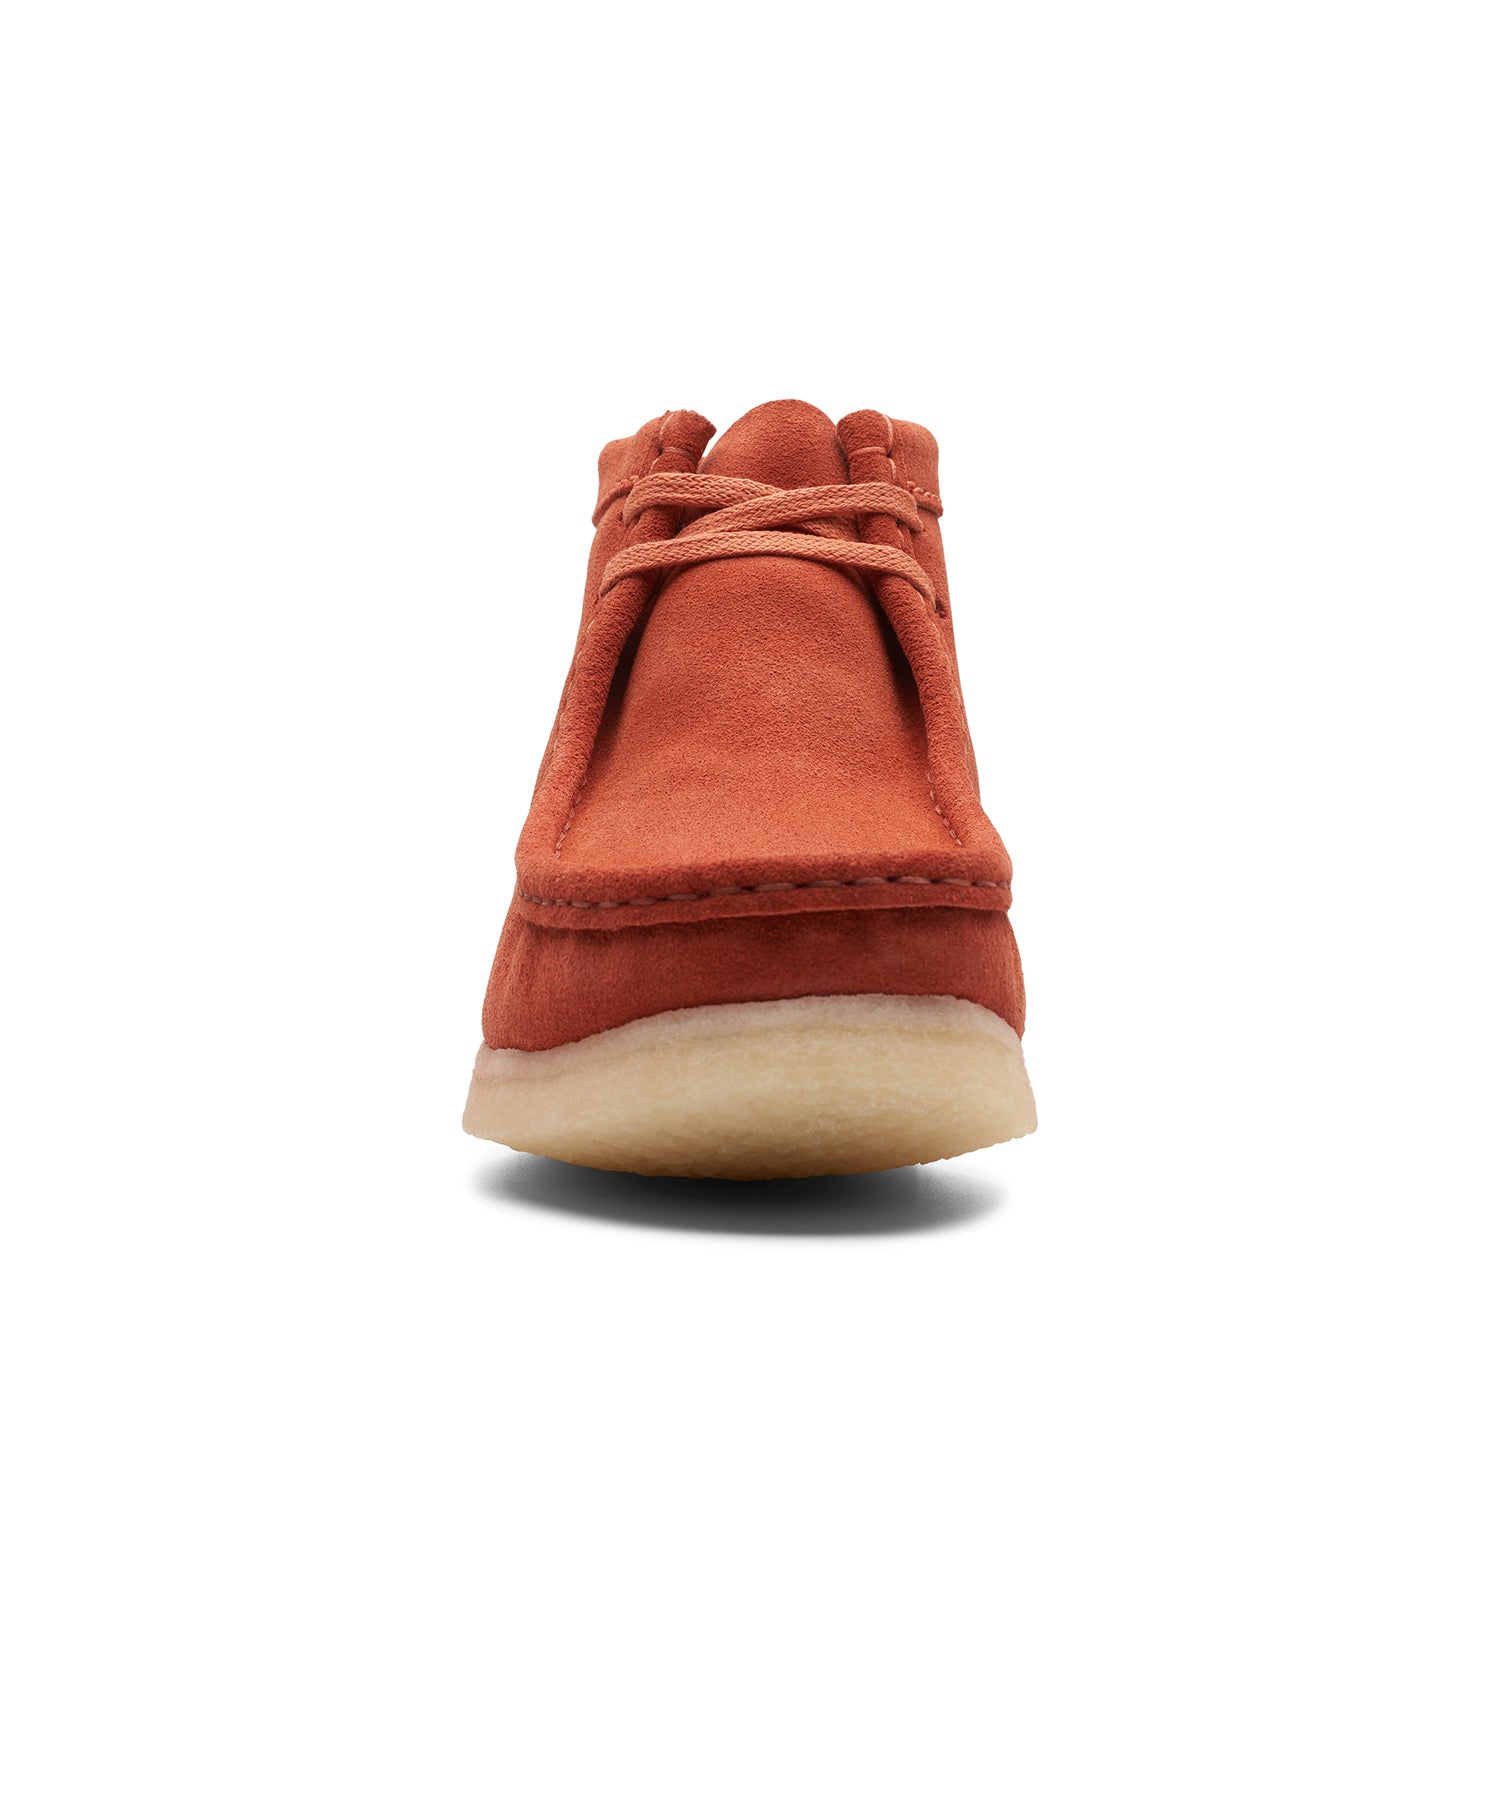 recognized brands new appearance brand new Clarks Wallabee Boot in Burnt Orange Suede - Todd Snyder